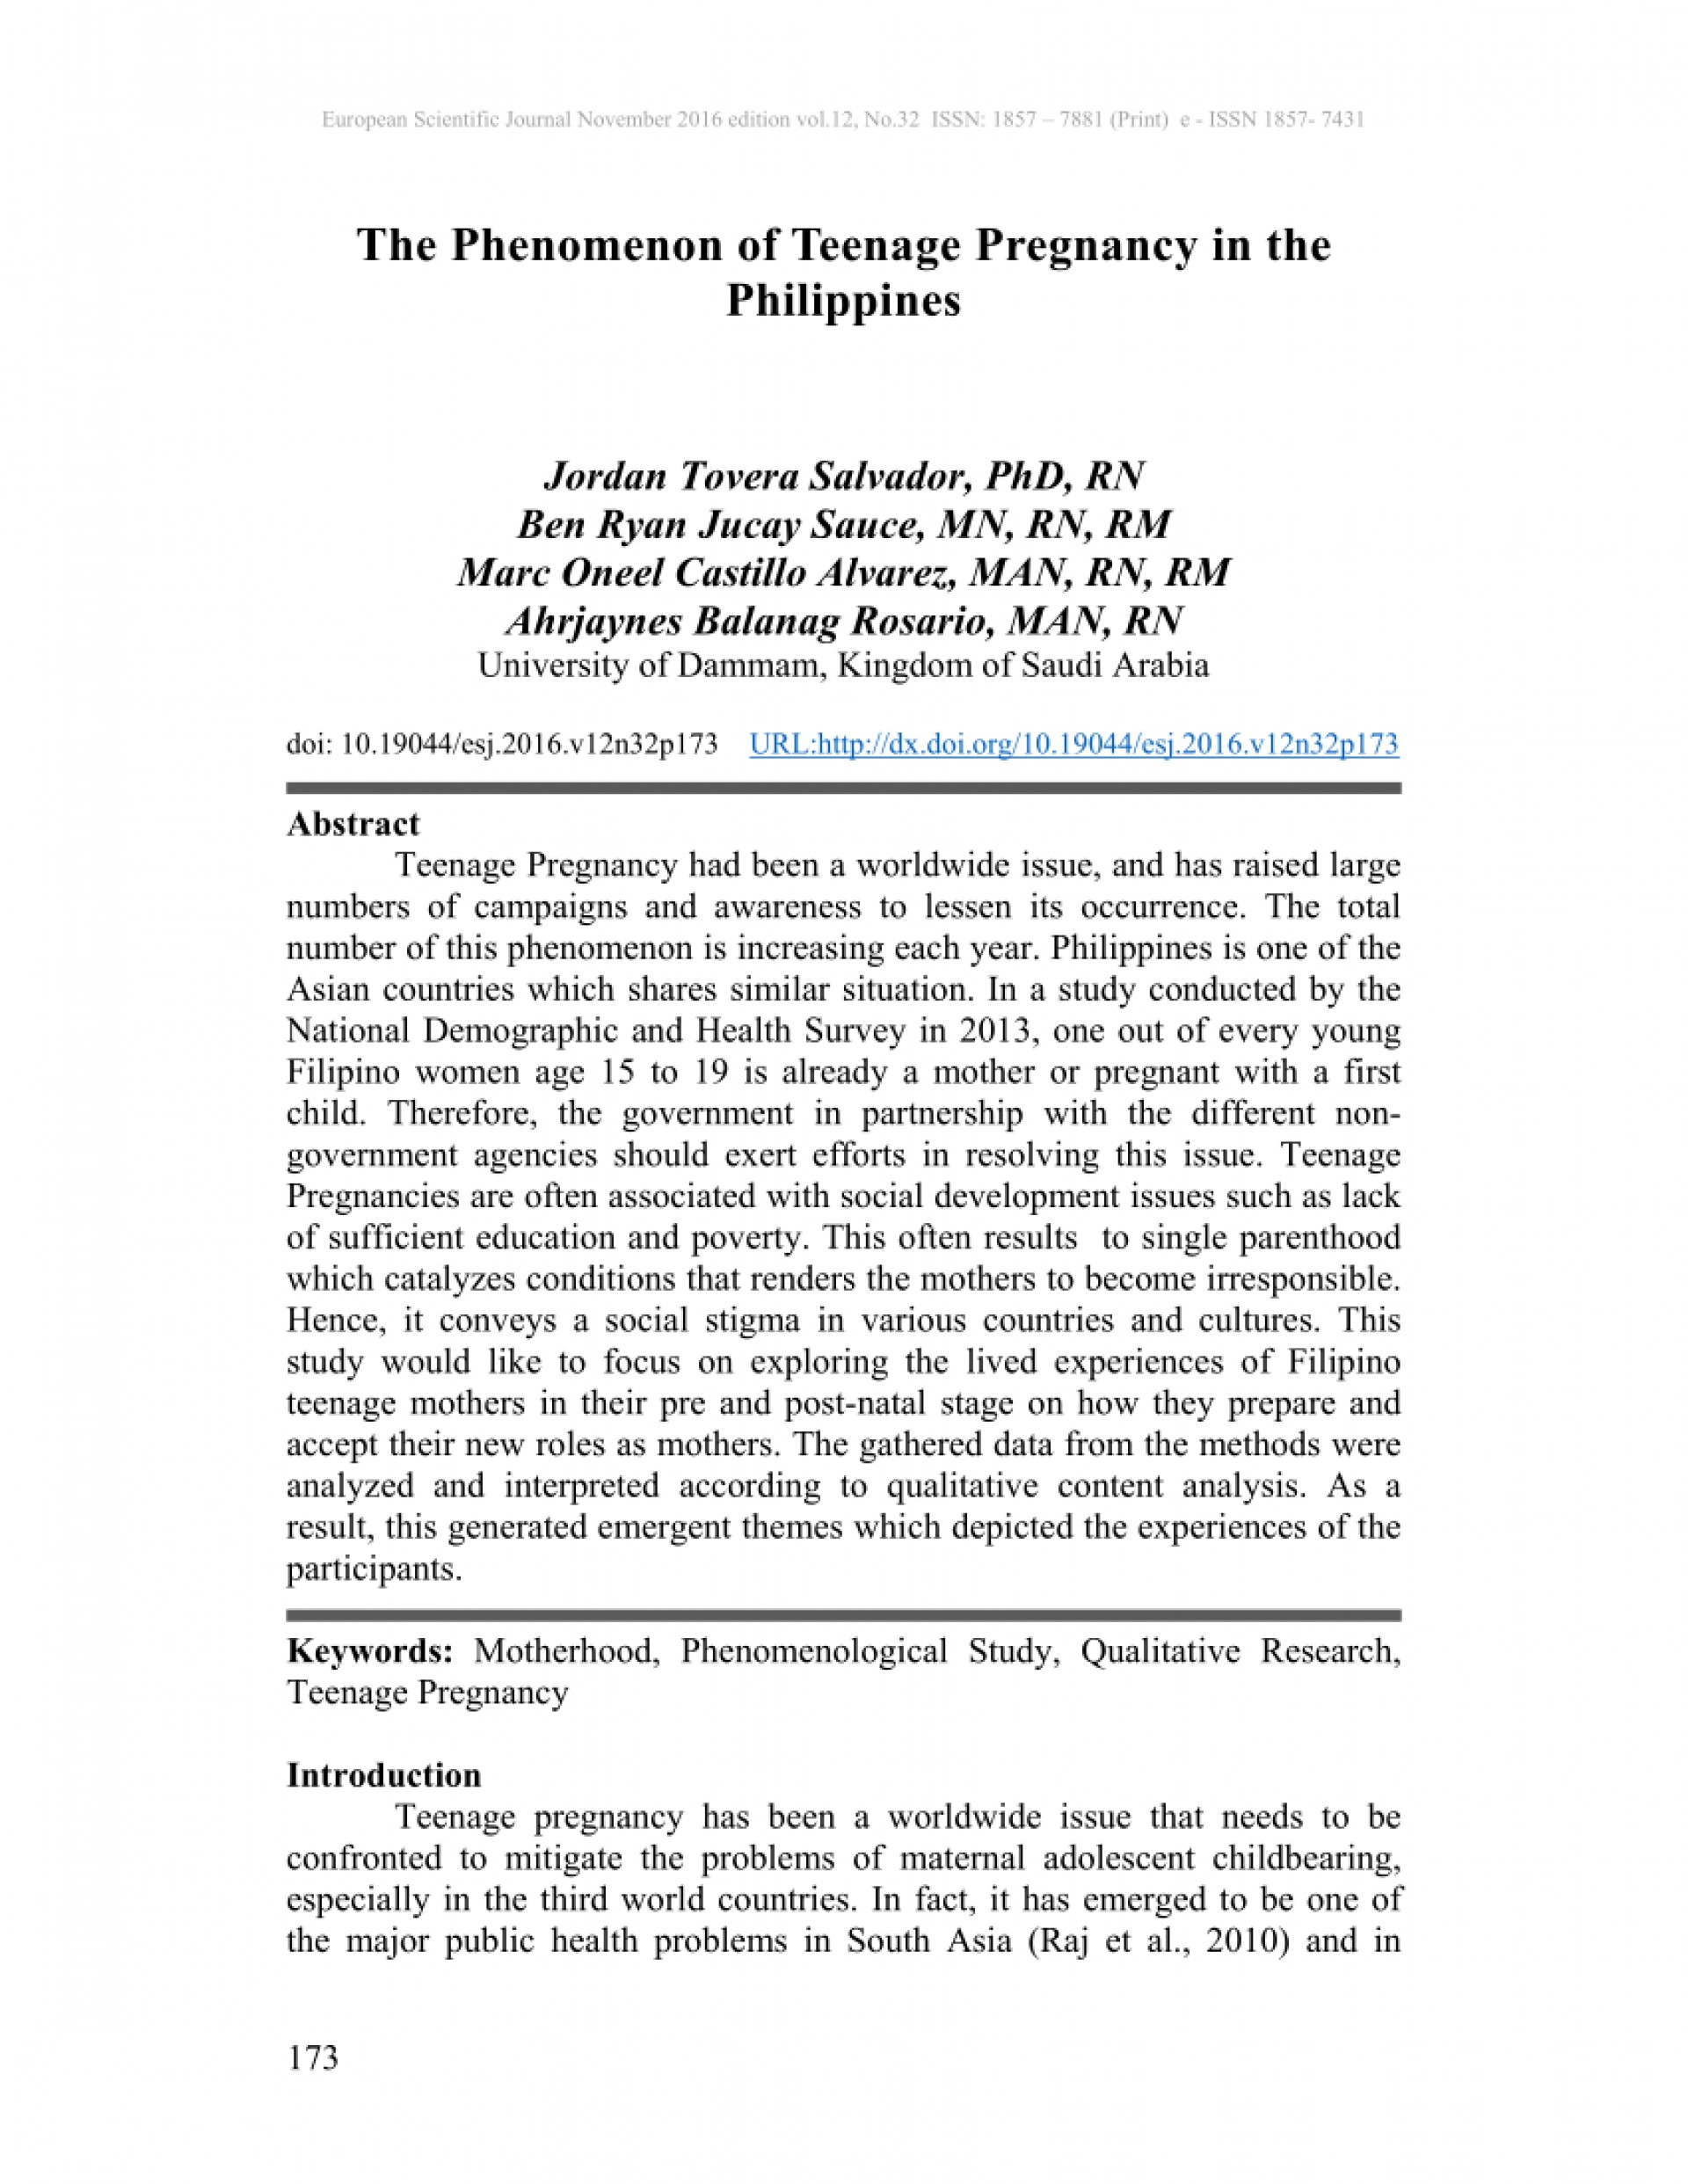 001 Largepreview Introduction Of Research Paper About Teenage Incredible A Pregnancy In The Philippines On 1920